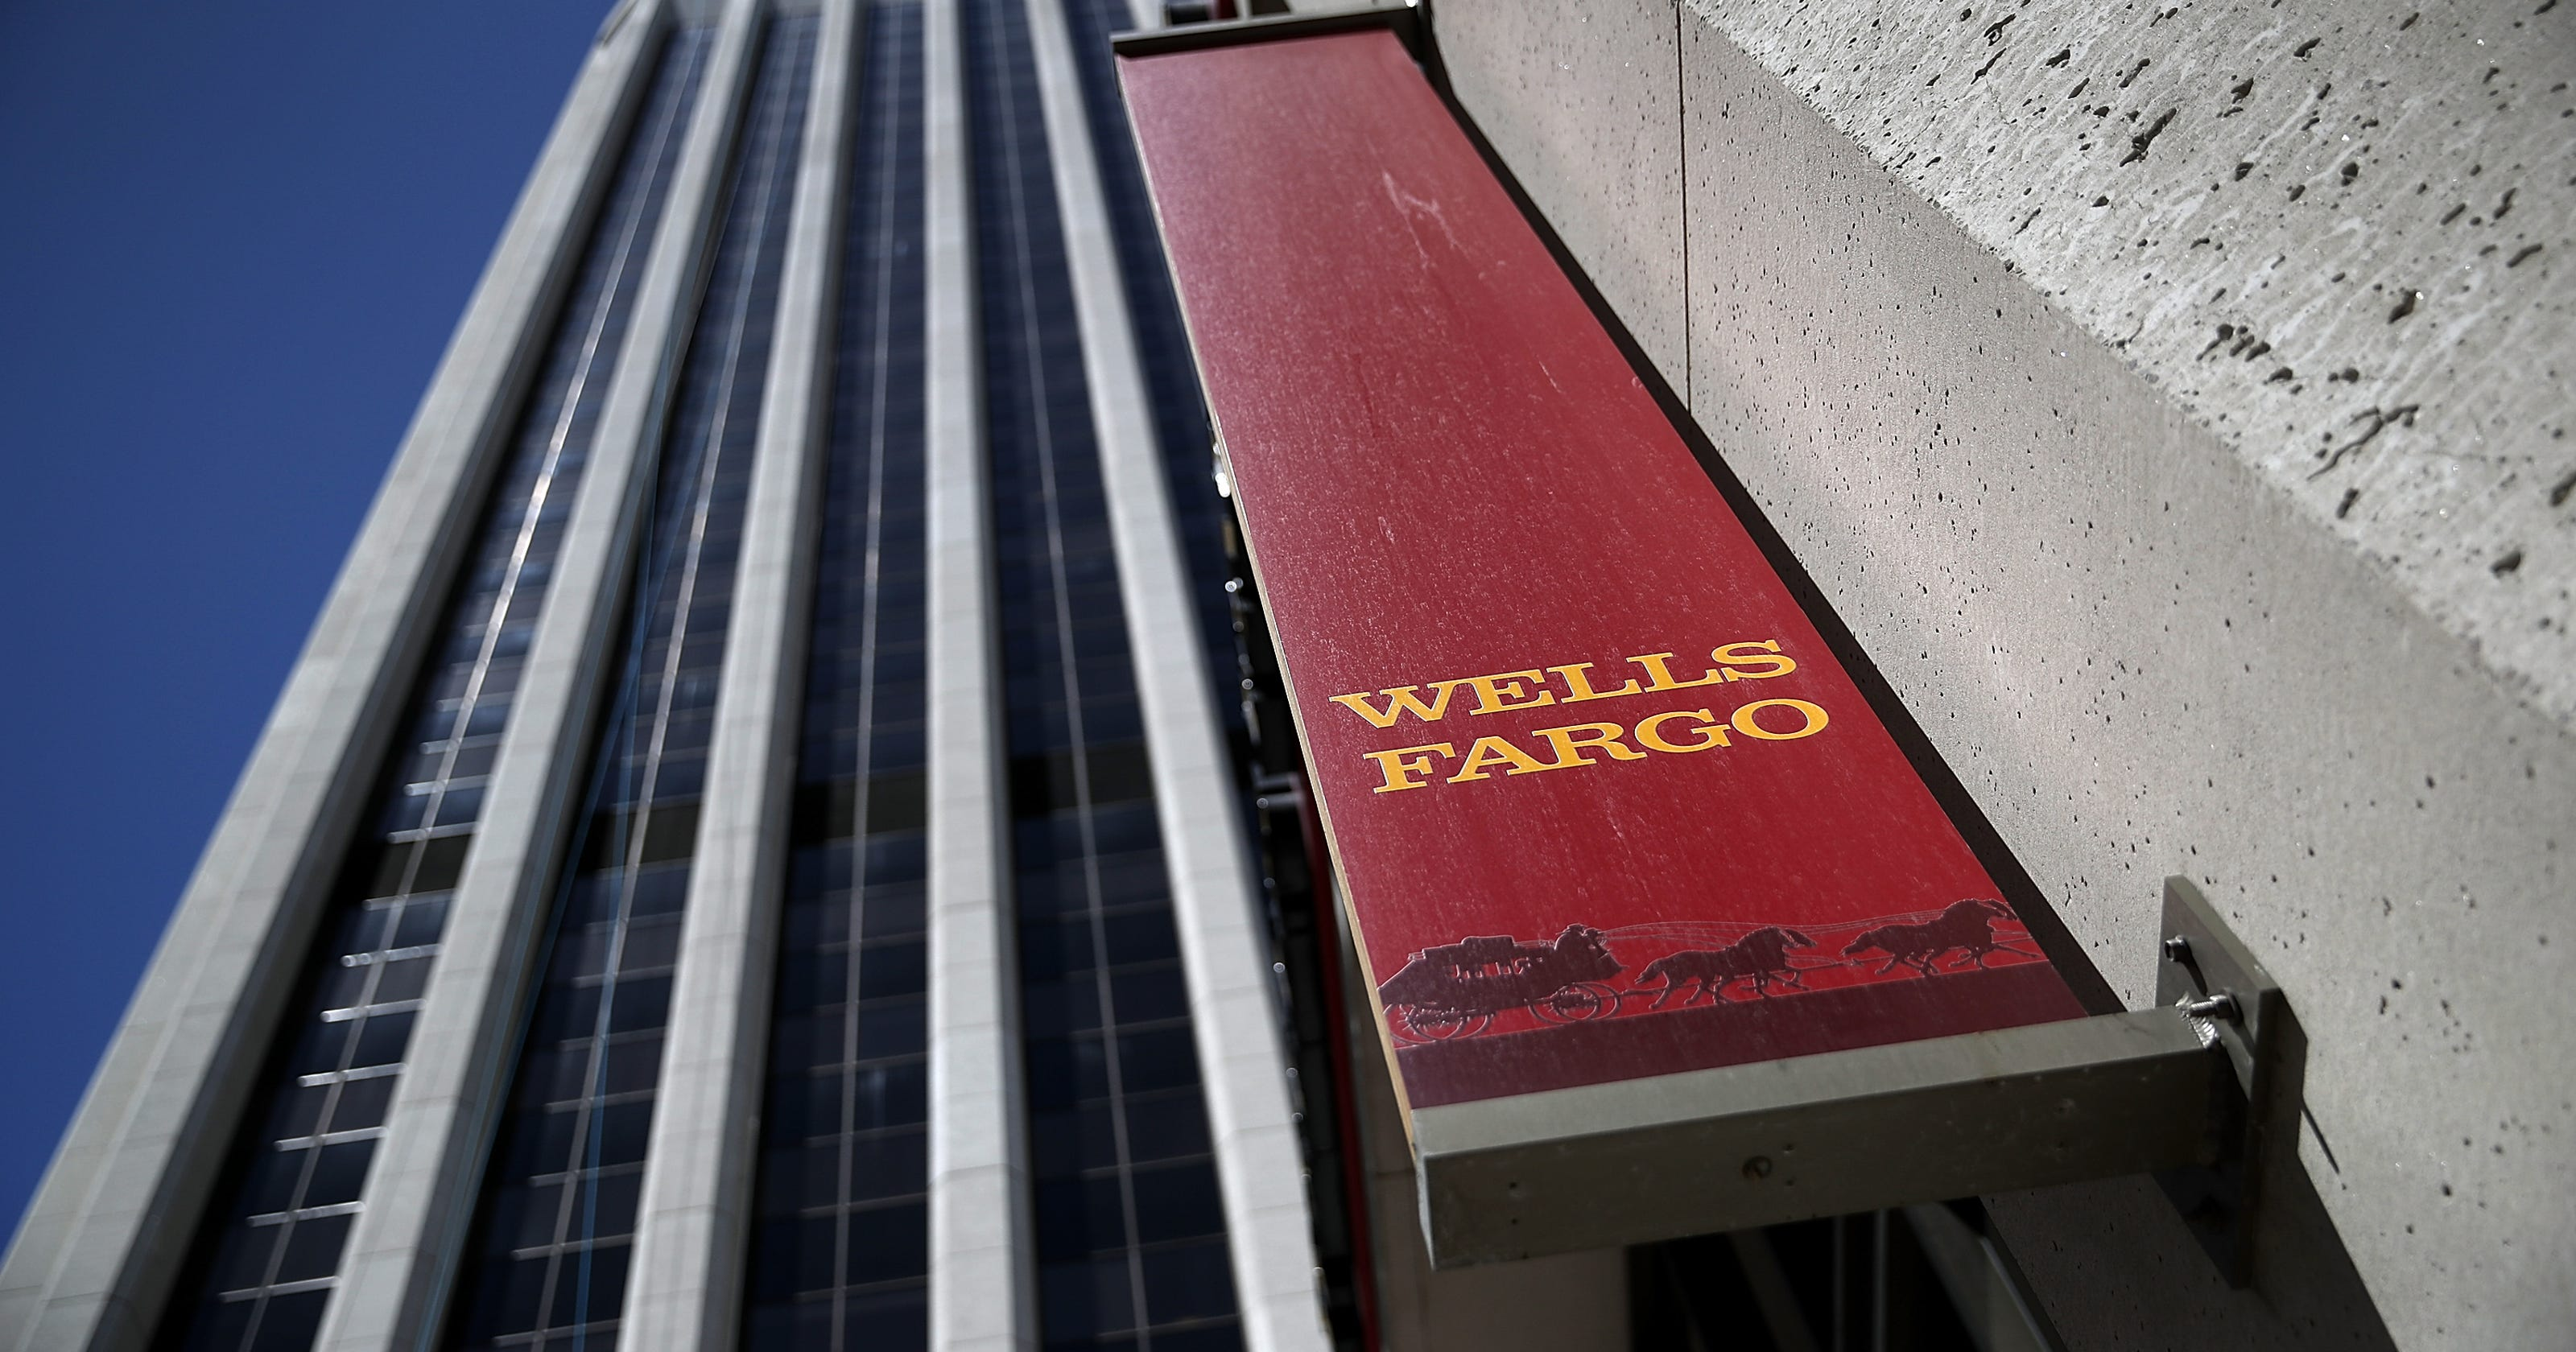 Wells Fargo faces another investigation, over wealth management